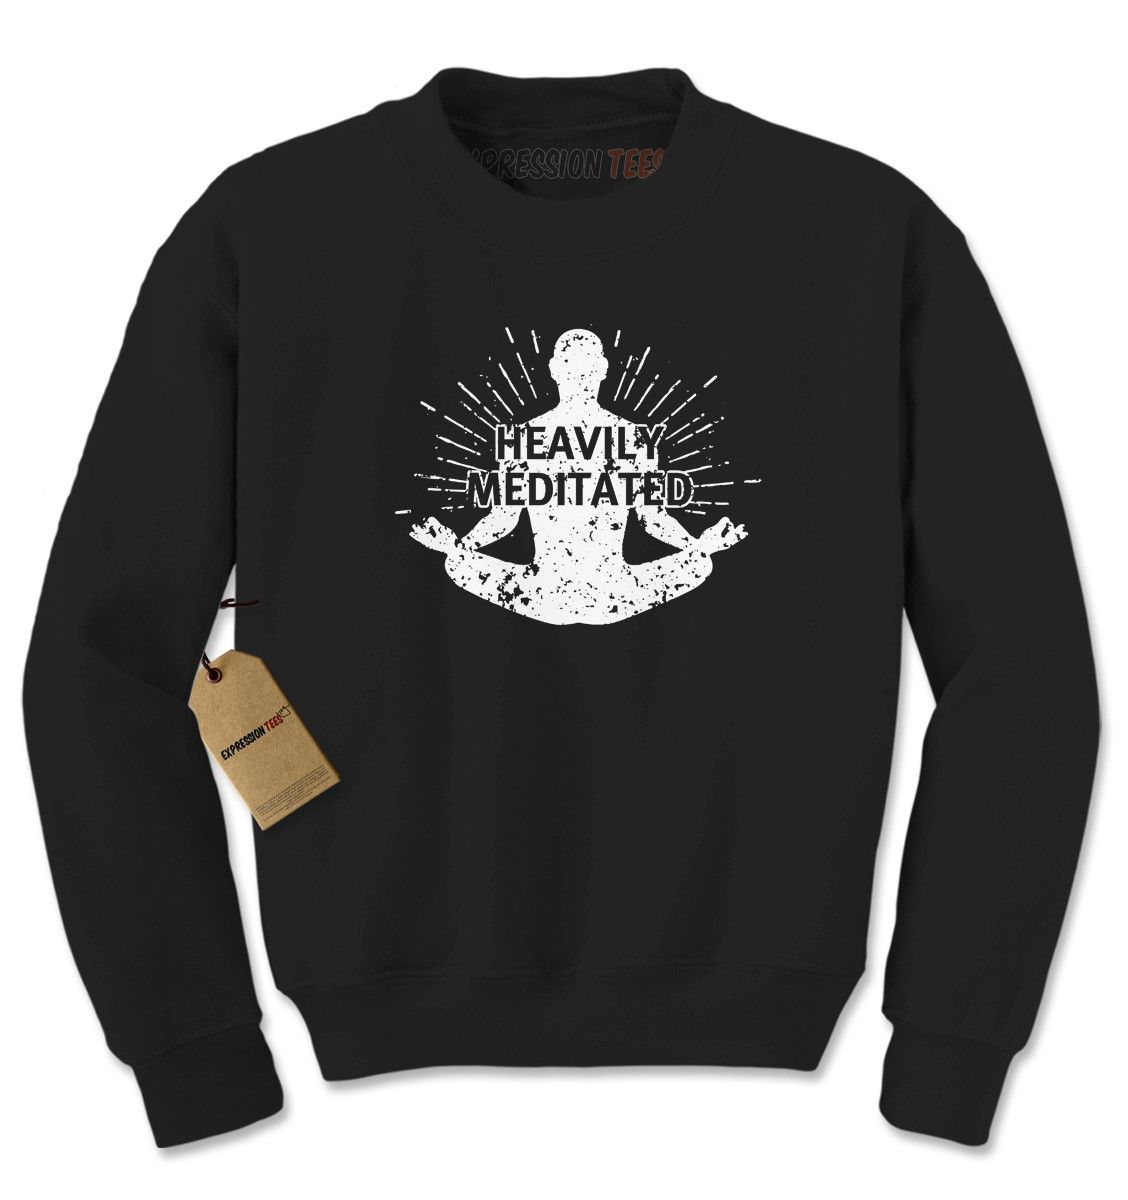 Heavily Meditated Adult Crewneck Sweatshirt